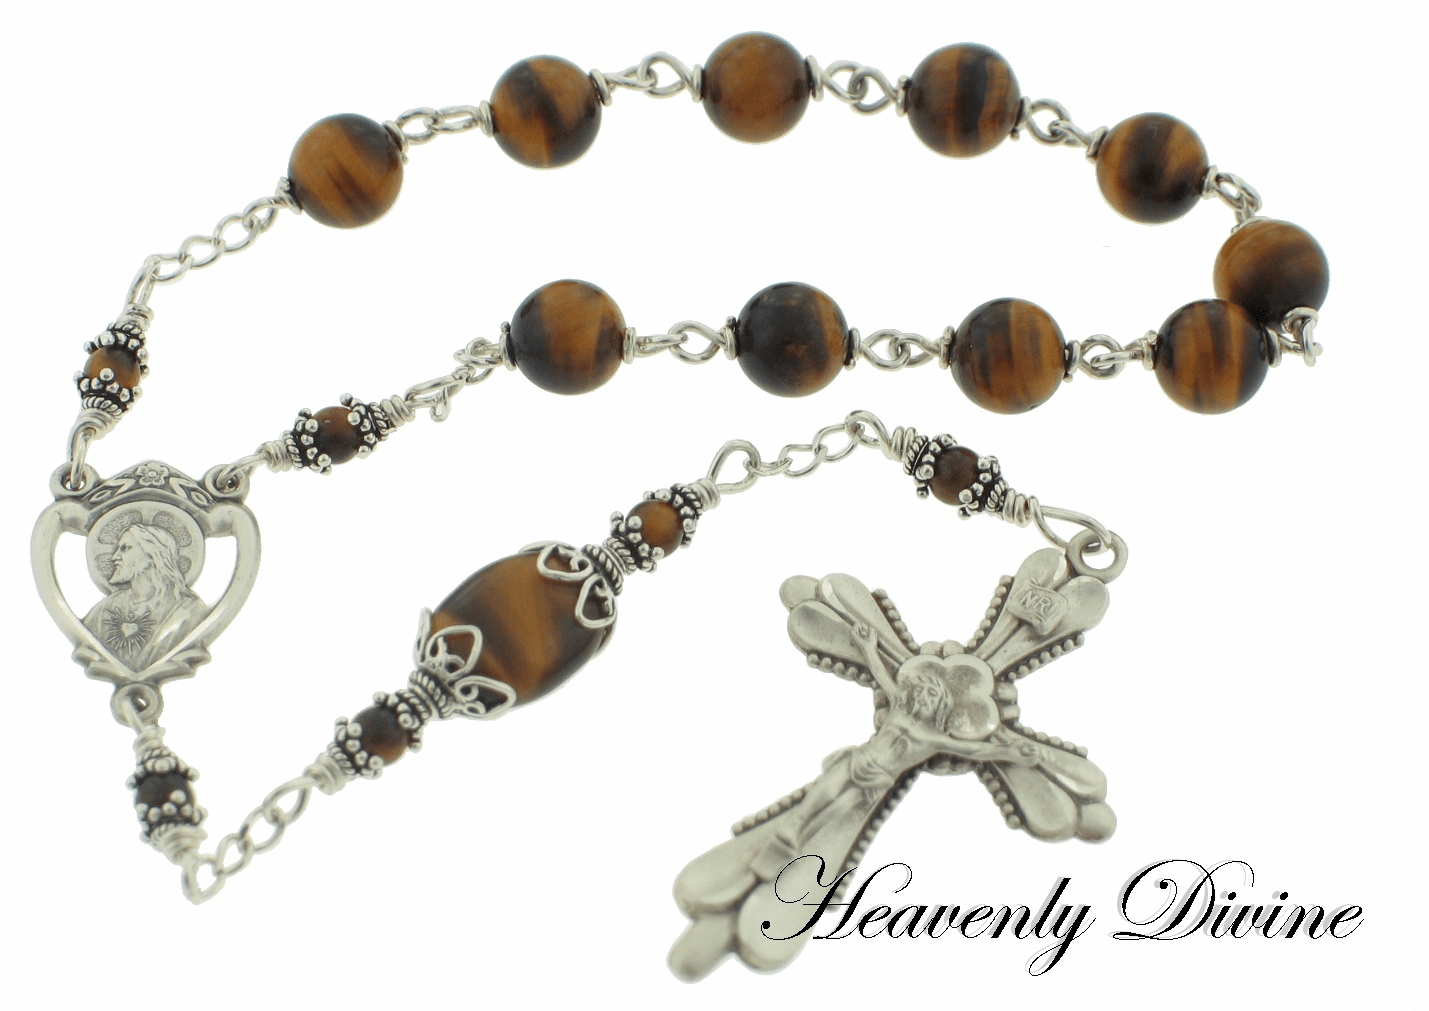 Heavenly Divine Rosaries Brown Tigereye Sterling Silver Wire-Wrapped Pocket Rosary